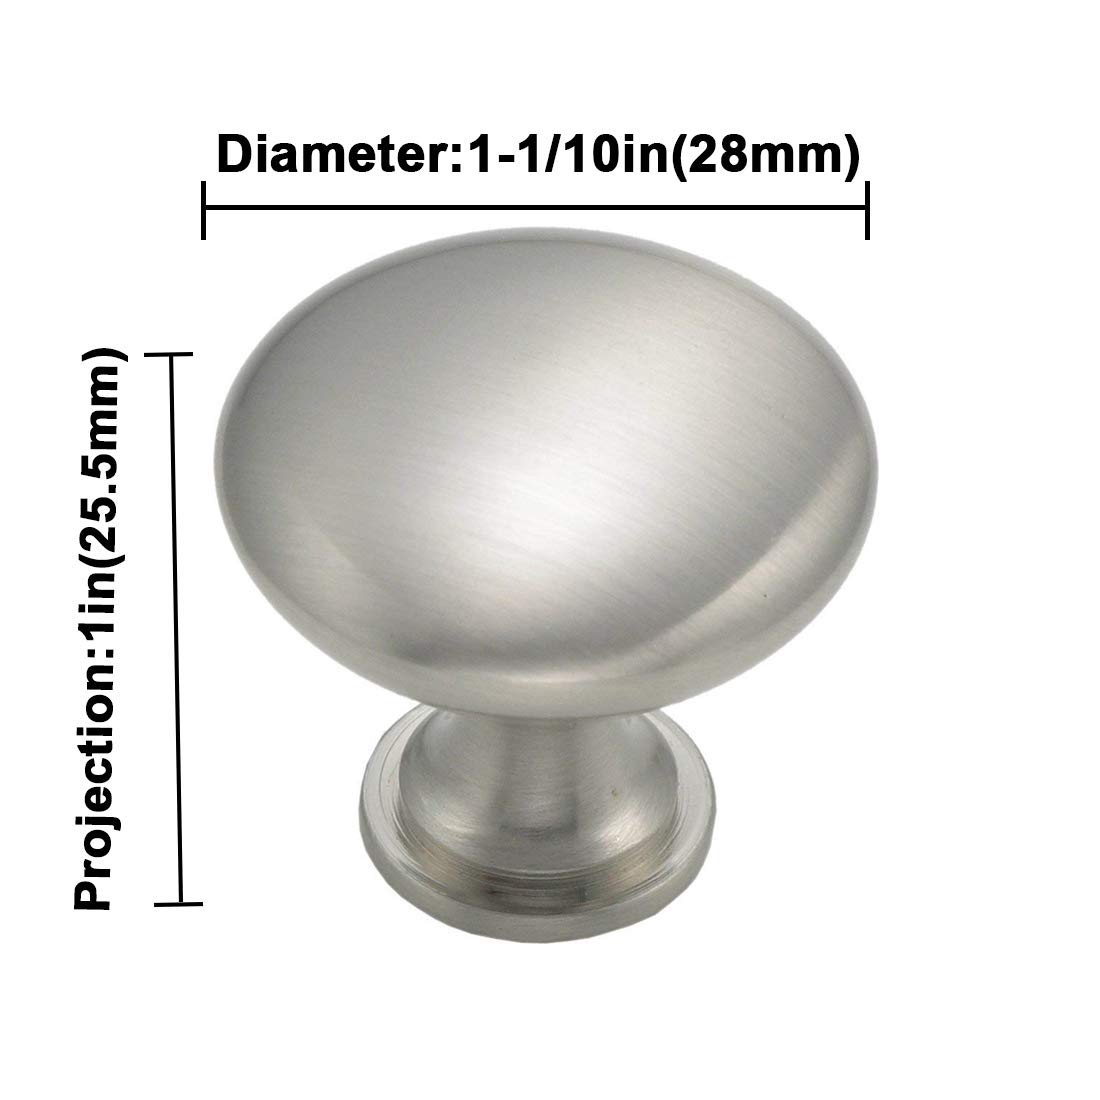 London LH6050SNB metal color plateado Pack de 5 Nickel Knob Pomos de metal para puerta de armario